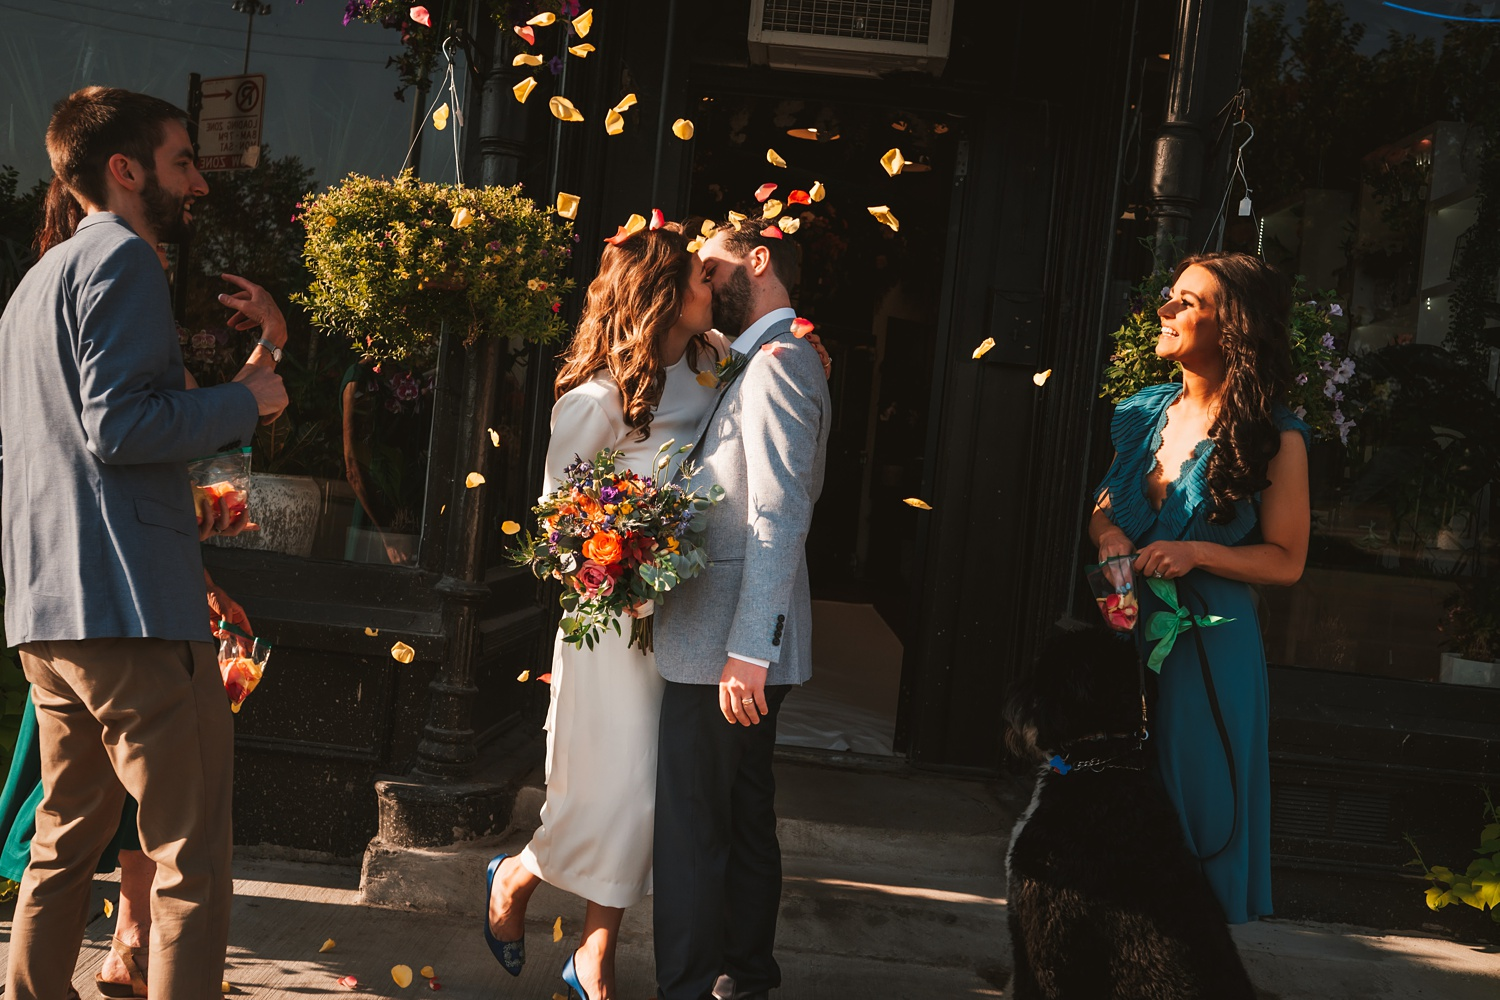 Sunrise Chicago Wedding - The Adamkovi, Steve's flower market ceremony, covid, zoom, flower petals